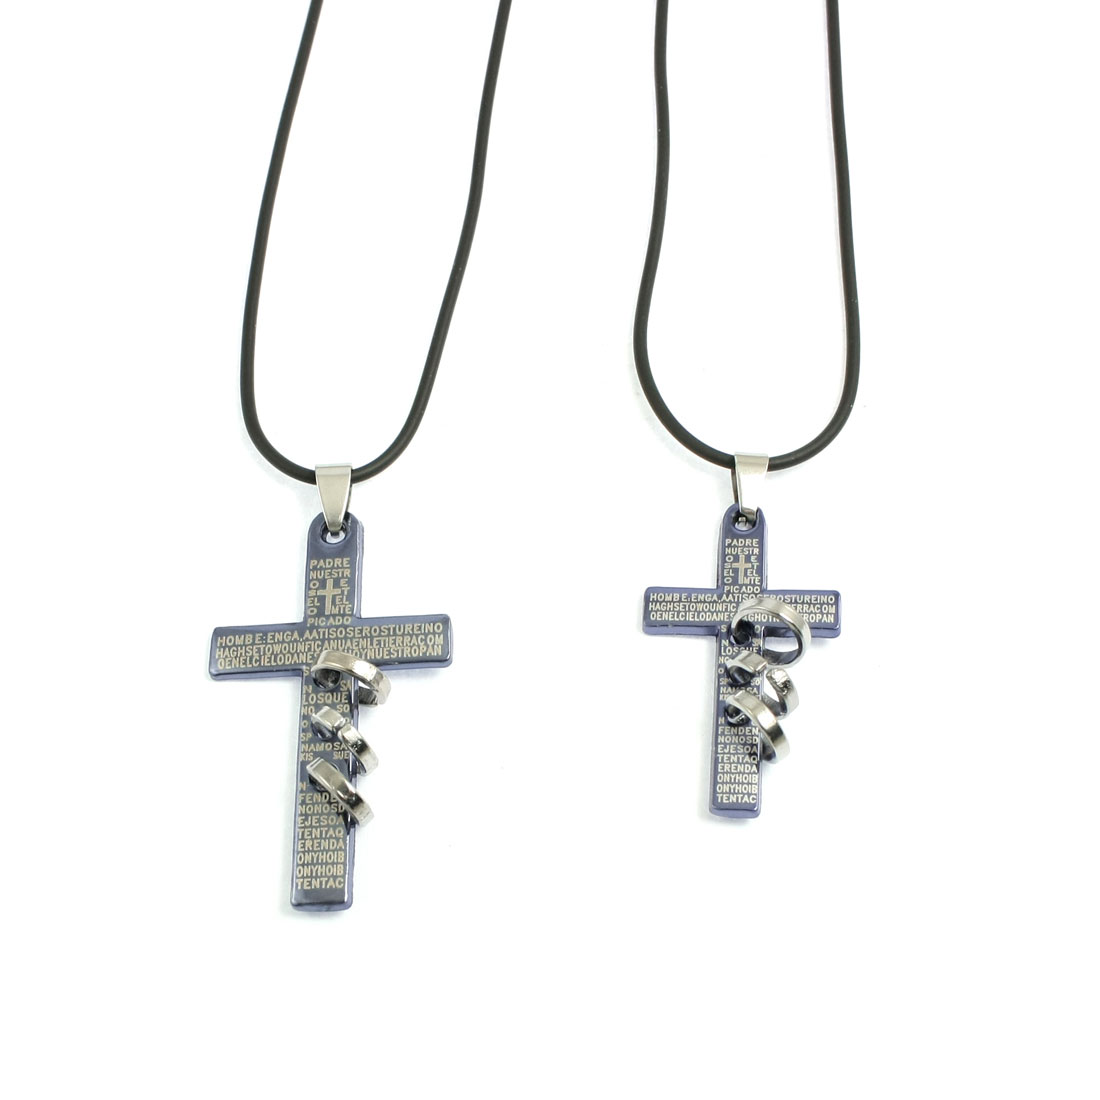 Lover Metal Cross Pendant Adjustable String Necklace Gift Black Blue Pair